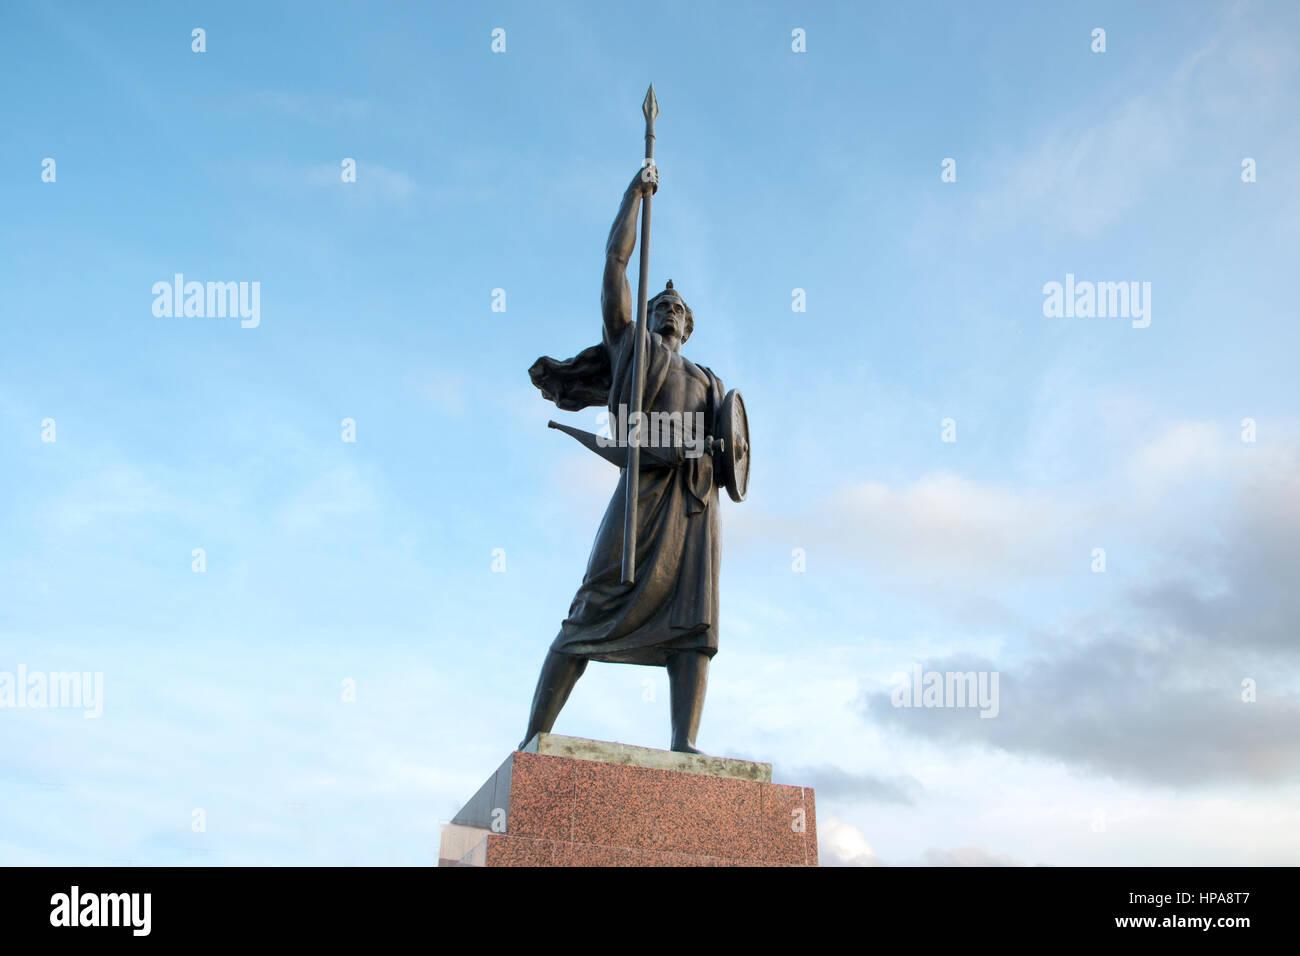 Palais du peuple Djibouti, East Africa (People's Palace statue) - Stock Image